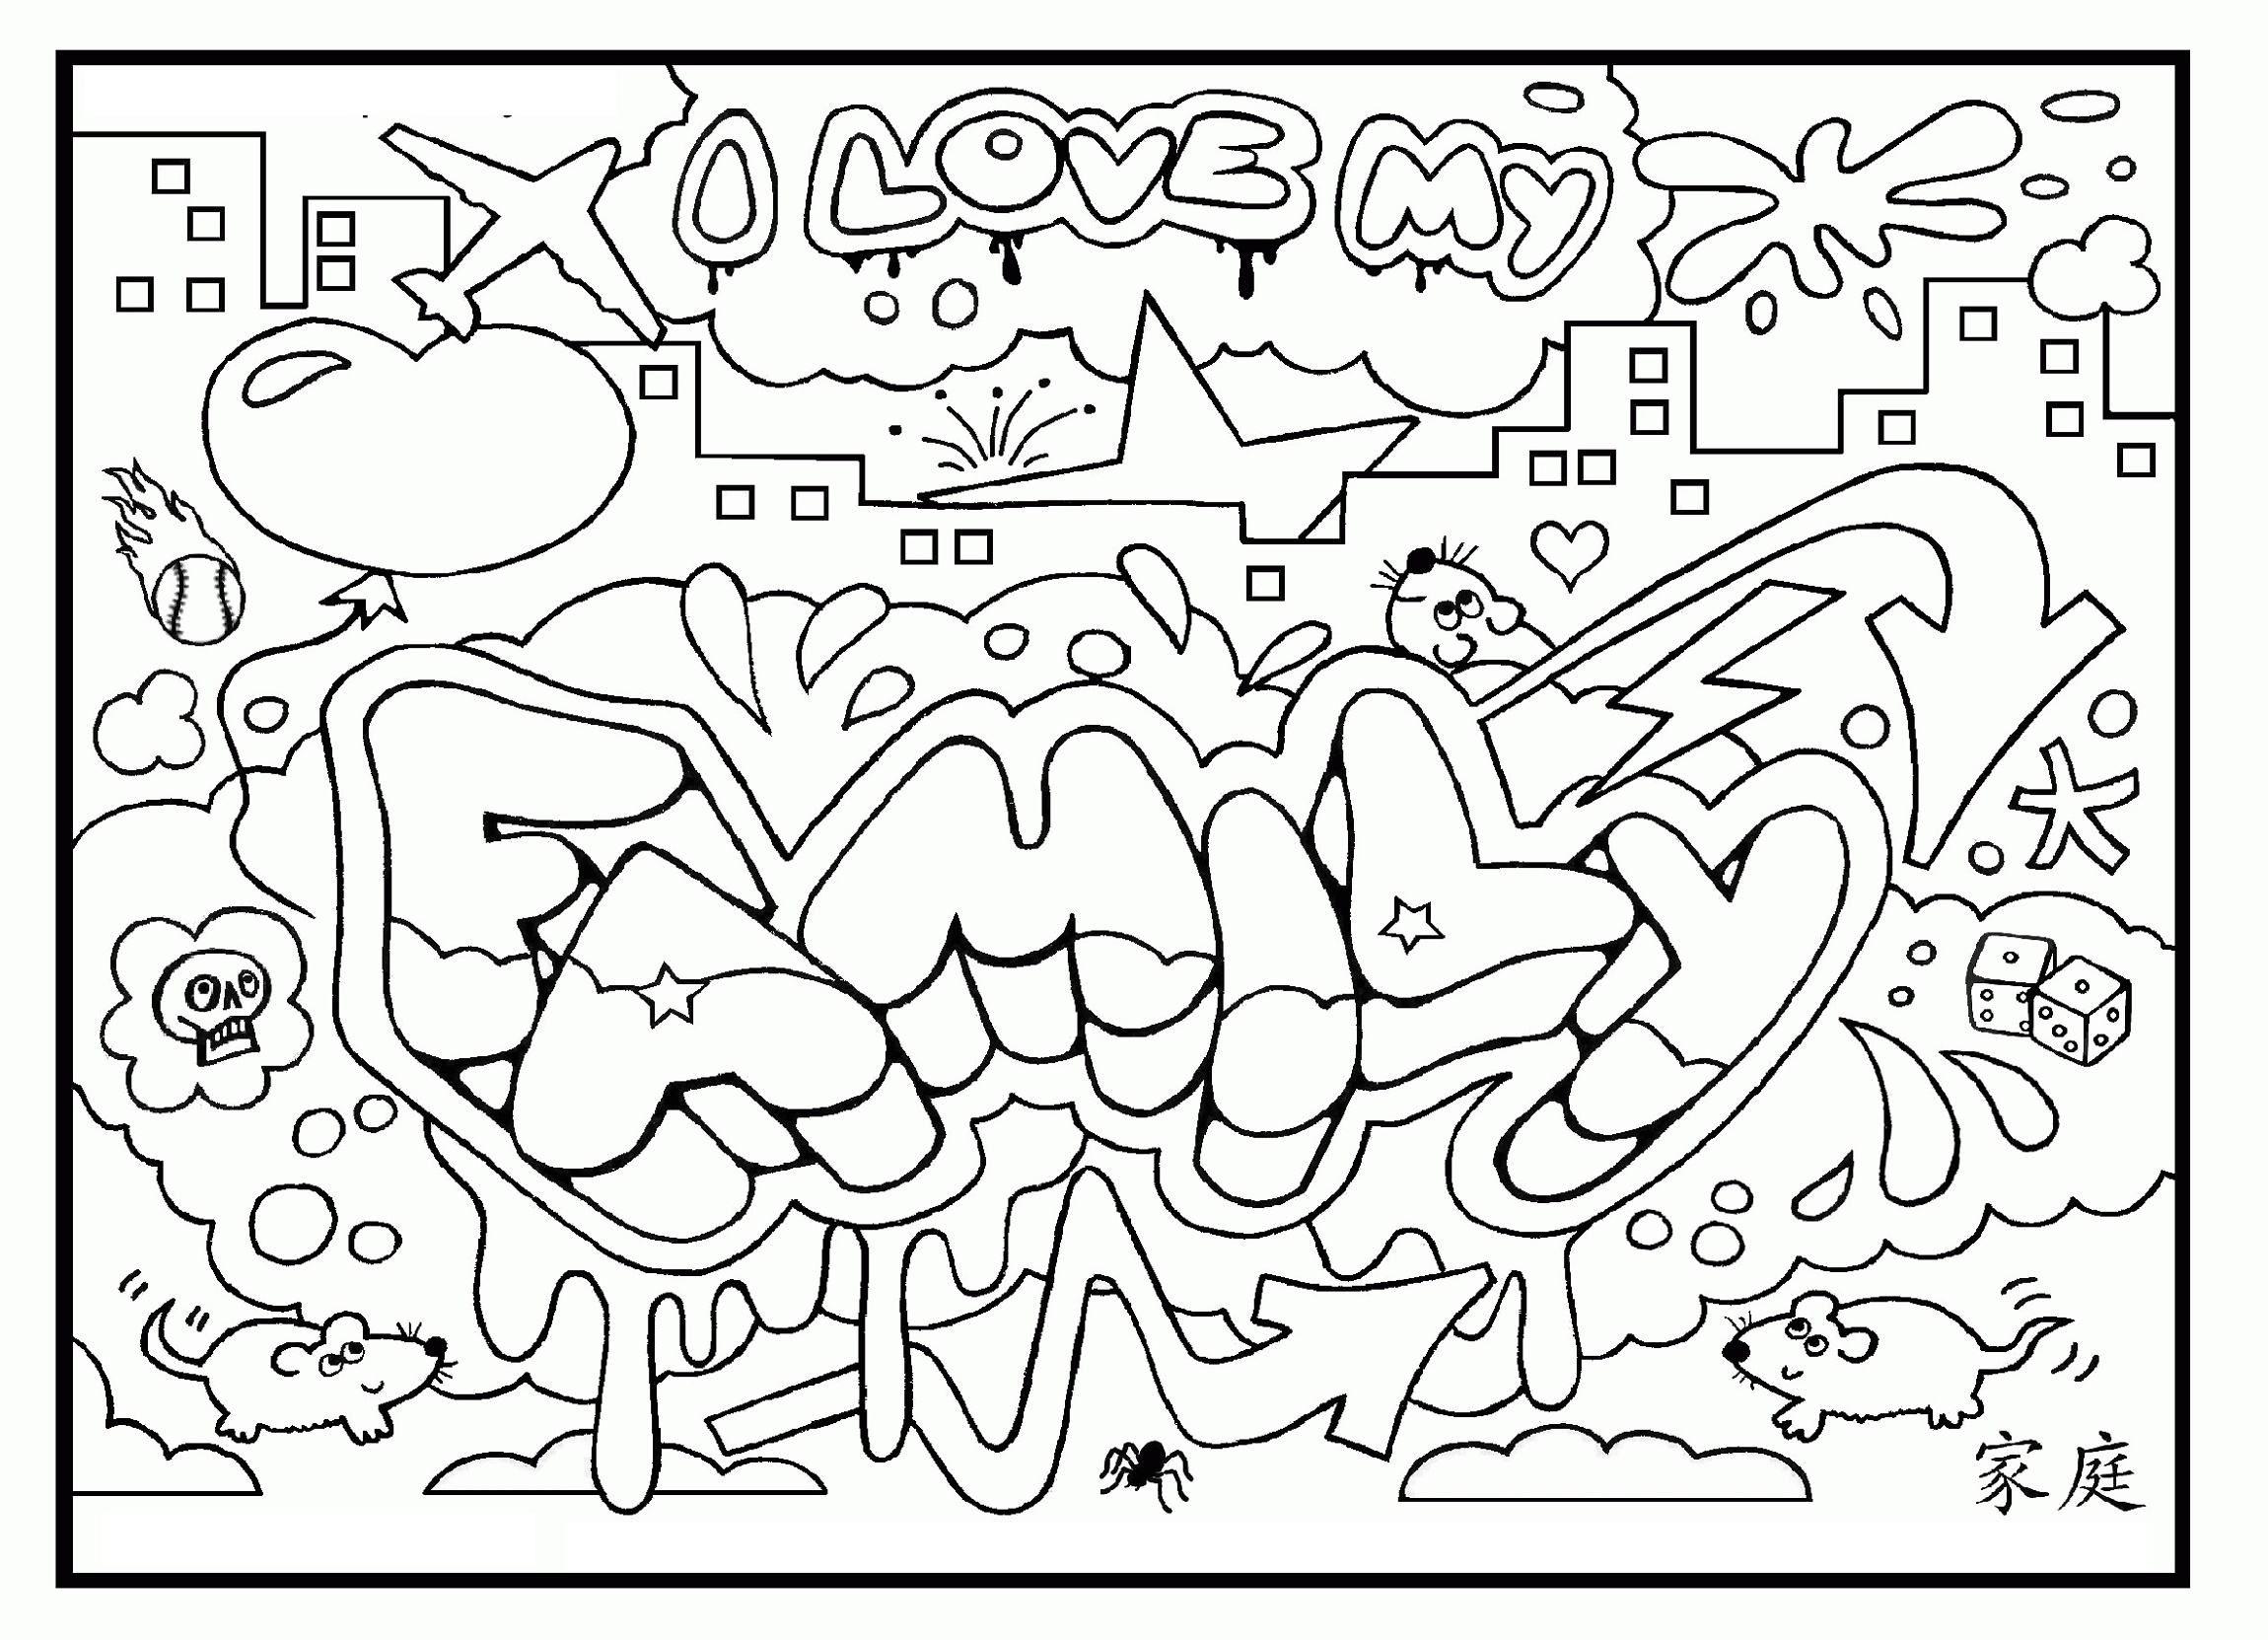 Coloring Pages for Teens Graffiti